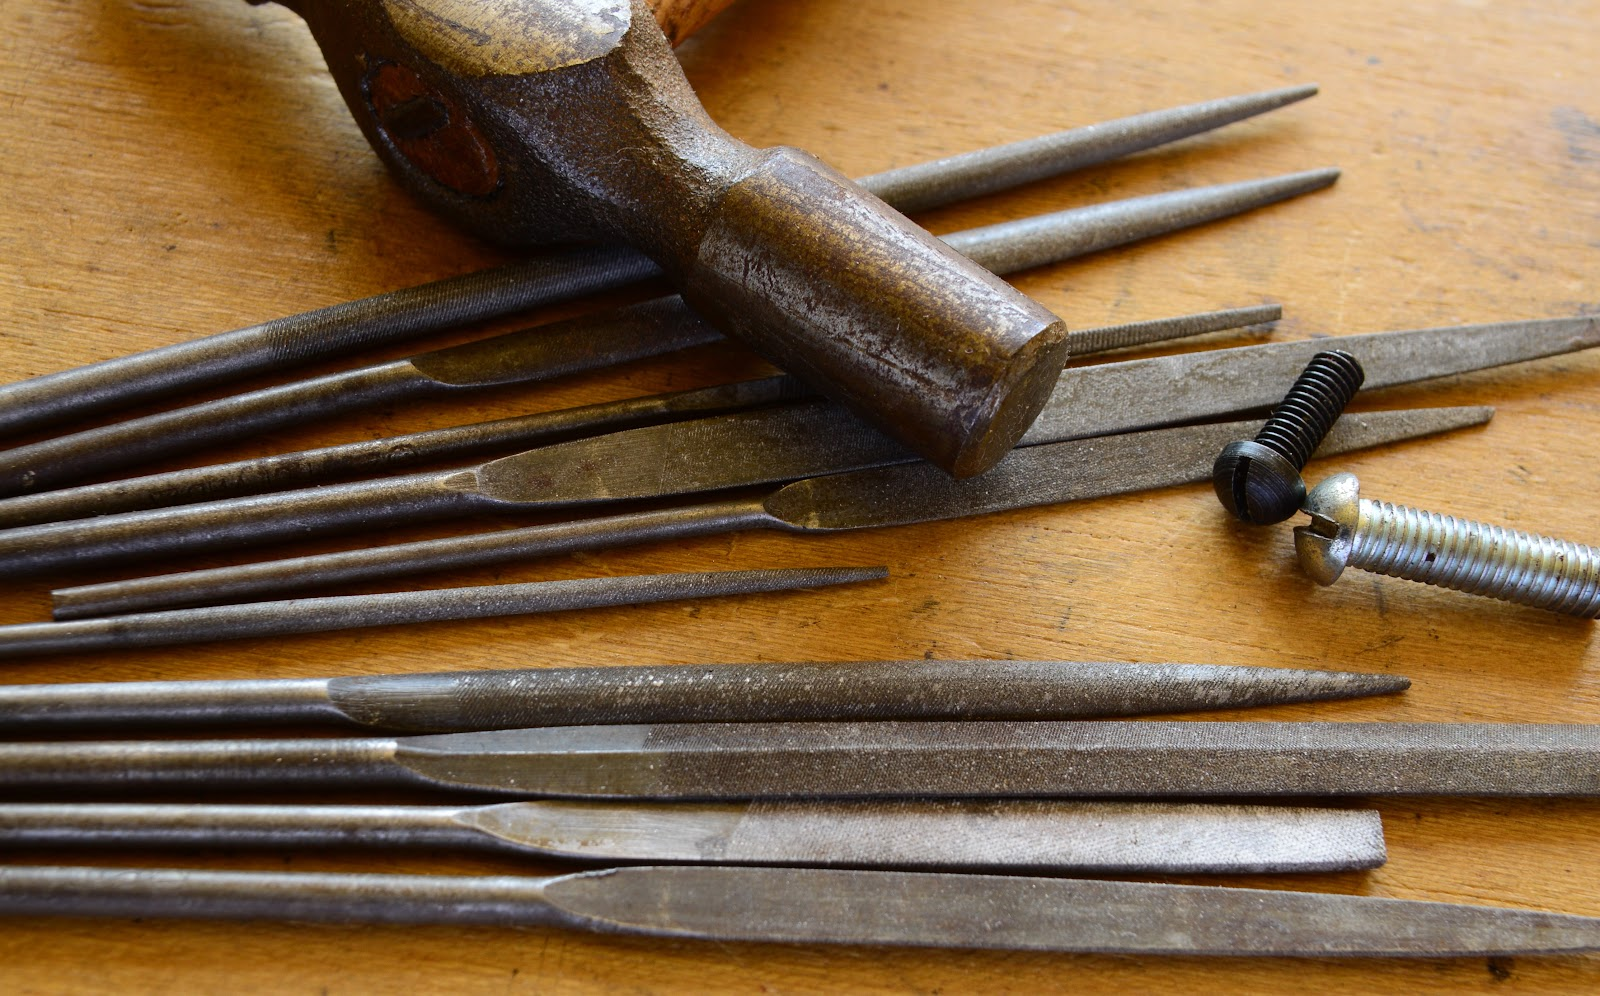 a tool kit perfect for removing screws